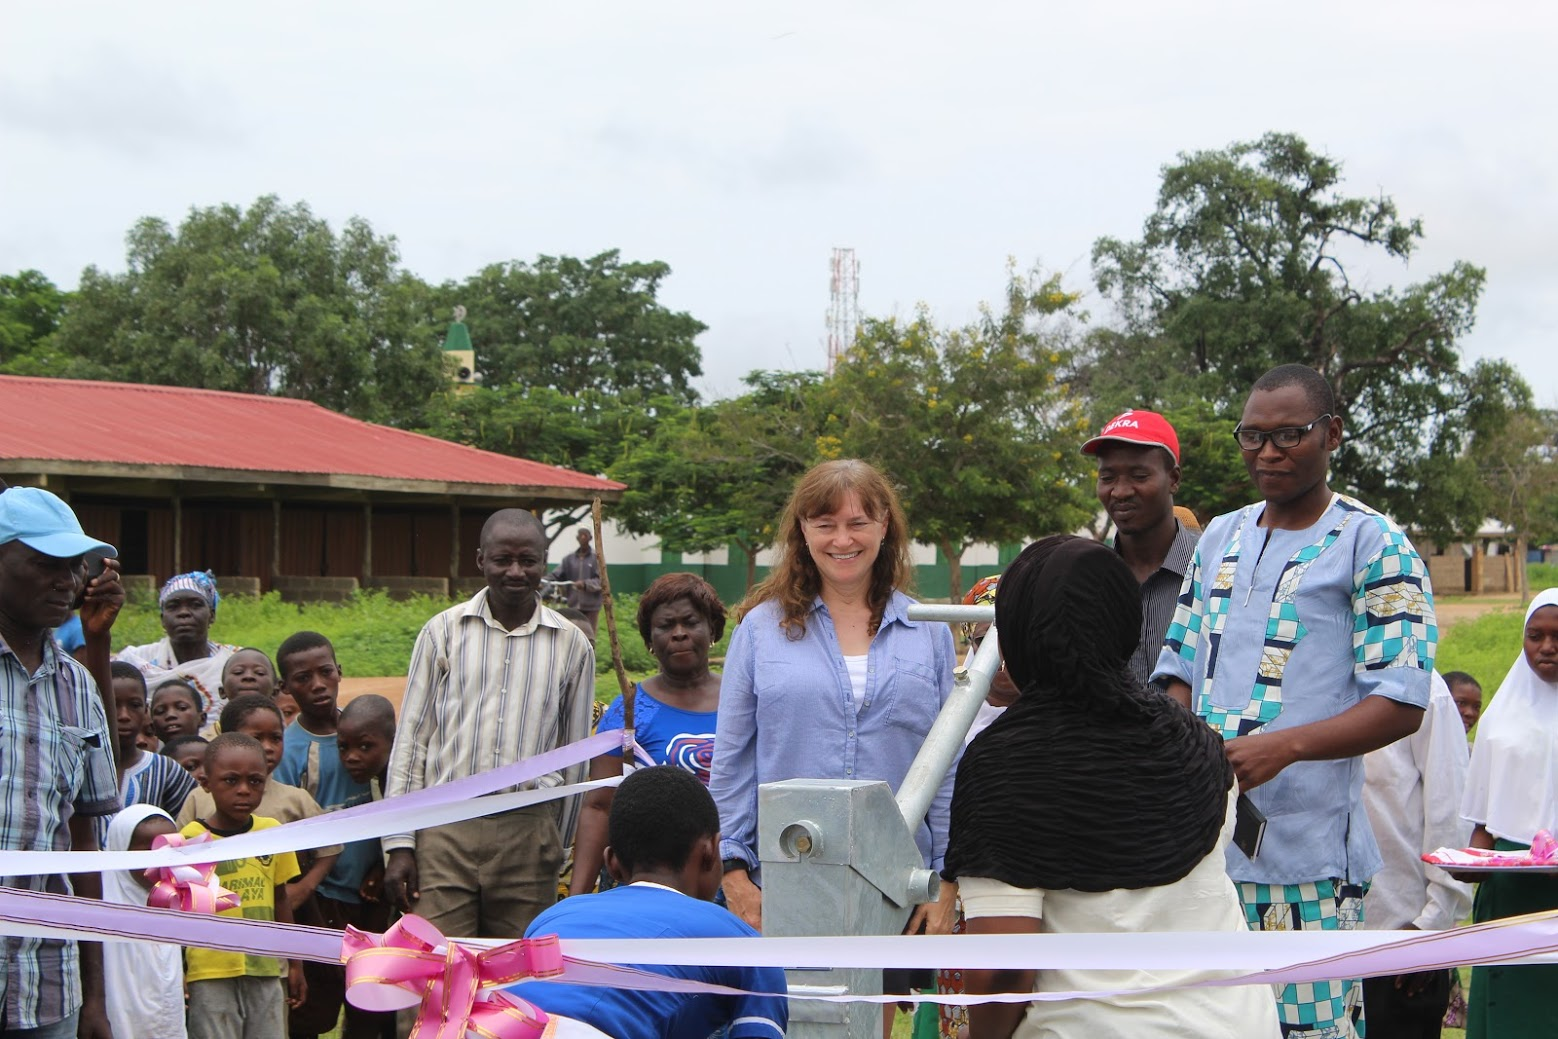 Stephanie Larson joined the Board of Water Access Now in 2014 and became their Secretary in 2015. She traveled to Ghana in 2008 and again in 2016 with her son, Benjamin Larson. In June 2018, Stephanie retired from The Pacific Financial Group, Inc. where she was involved with managing the compliance process, developing marketing strategies, and planning meetings and company events. She began her career in finance in North Dakota, and worked for U.S. Bank for 16 years after she moved to Seattle.